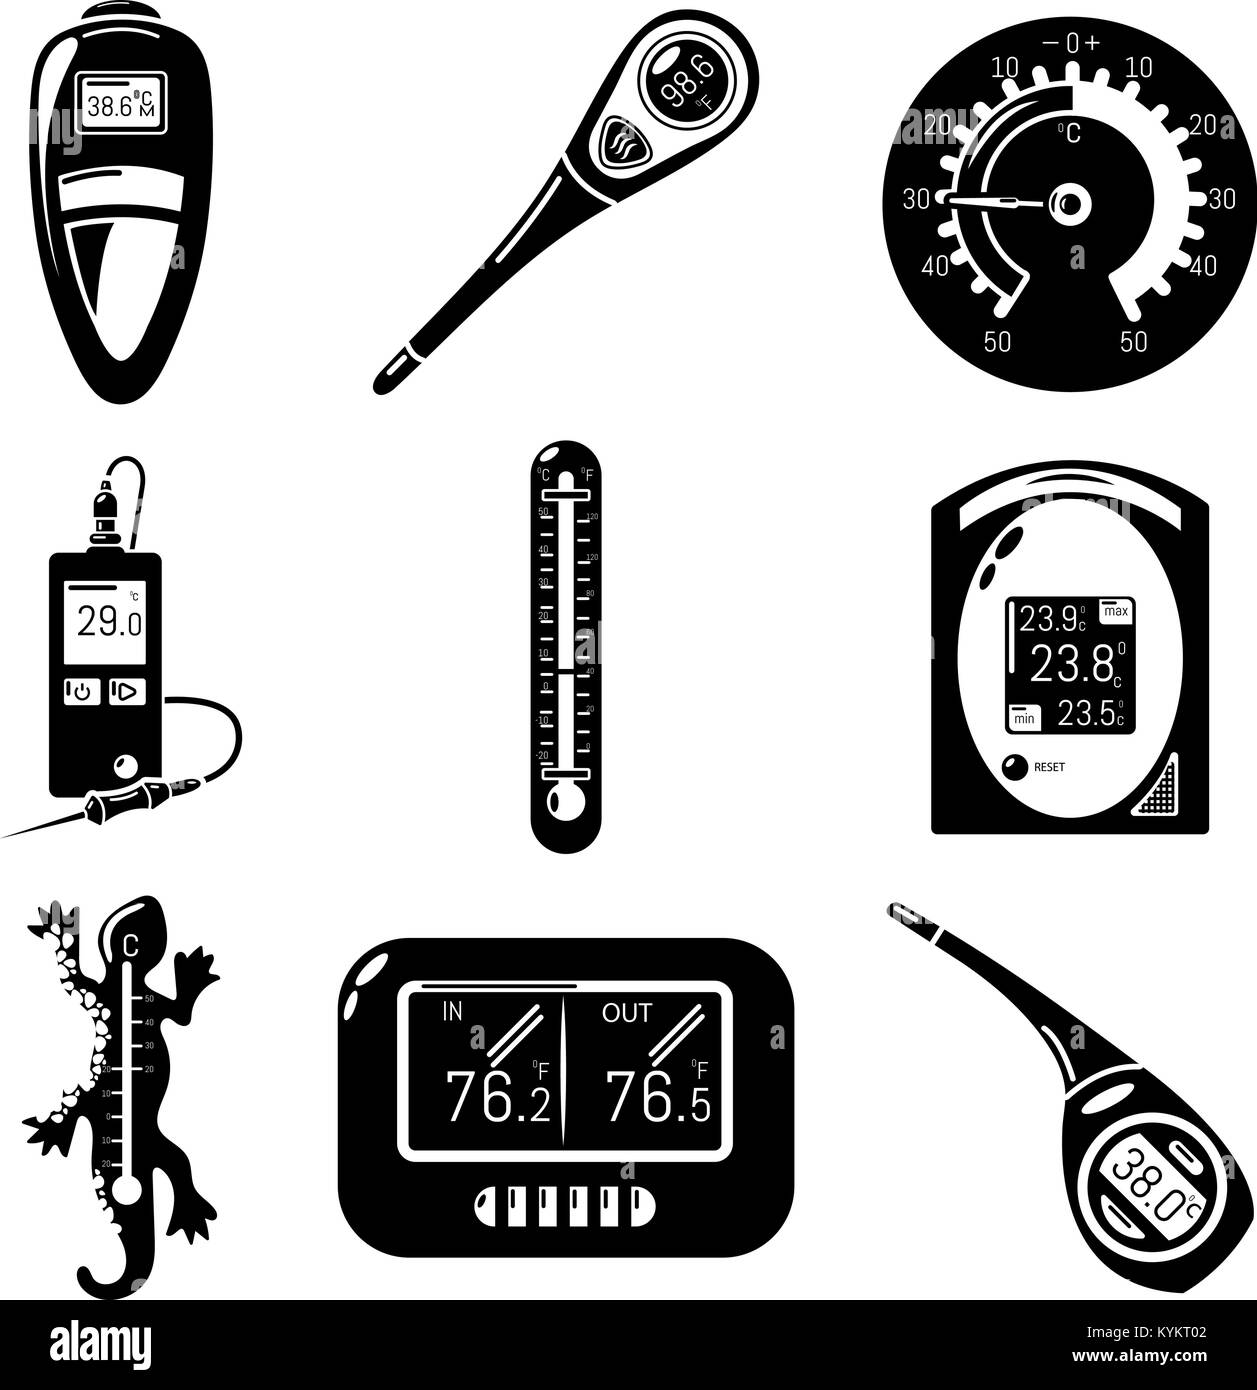 Thermometer indicators icons set, simple style - Stock Image